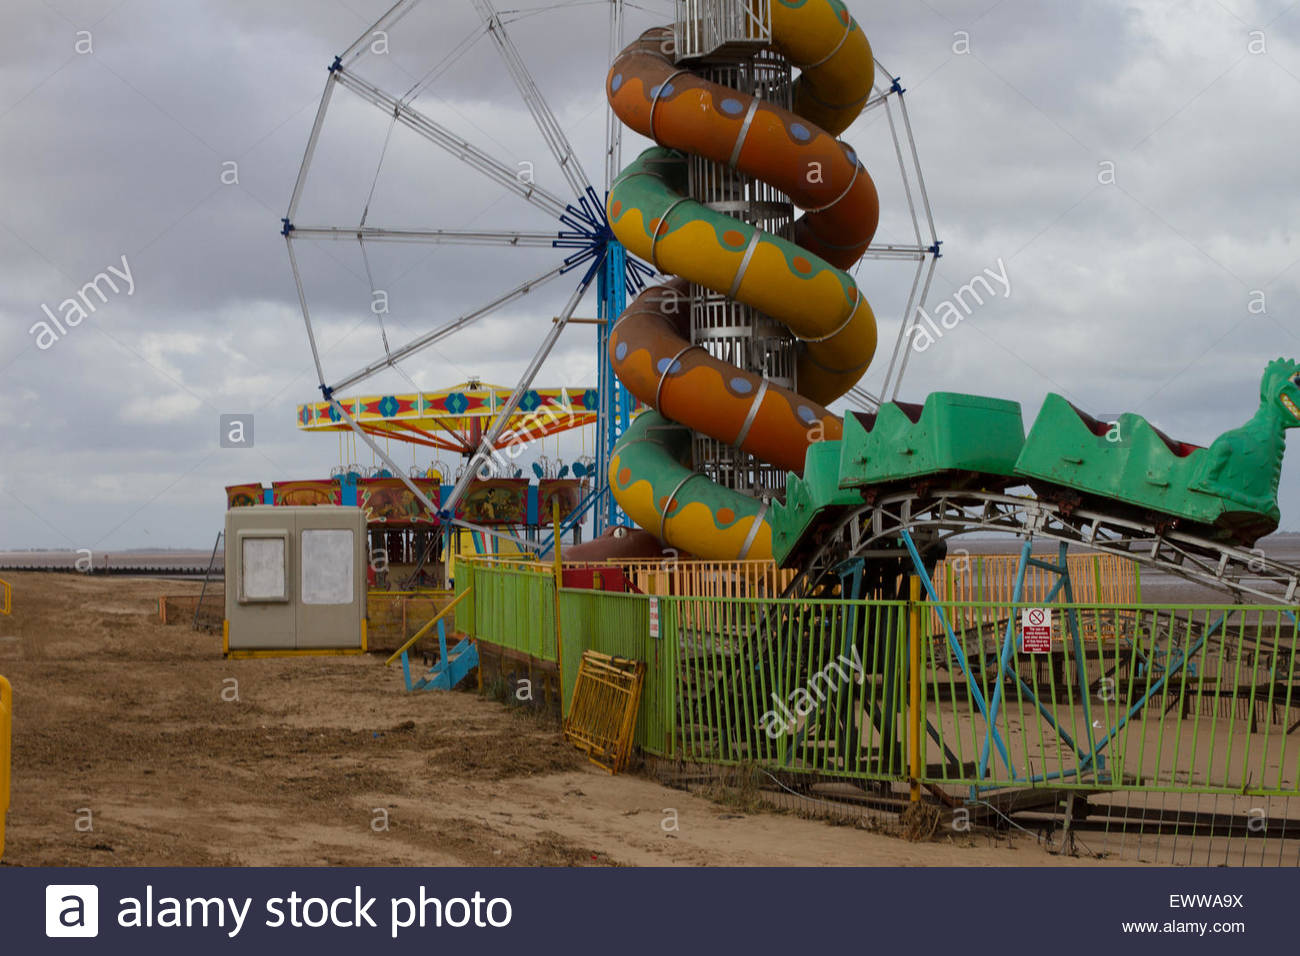 An old abandoned rusting amusement park in the East of England at Cleethorpes Beach - Stock Image